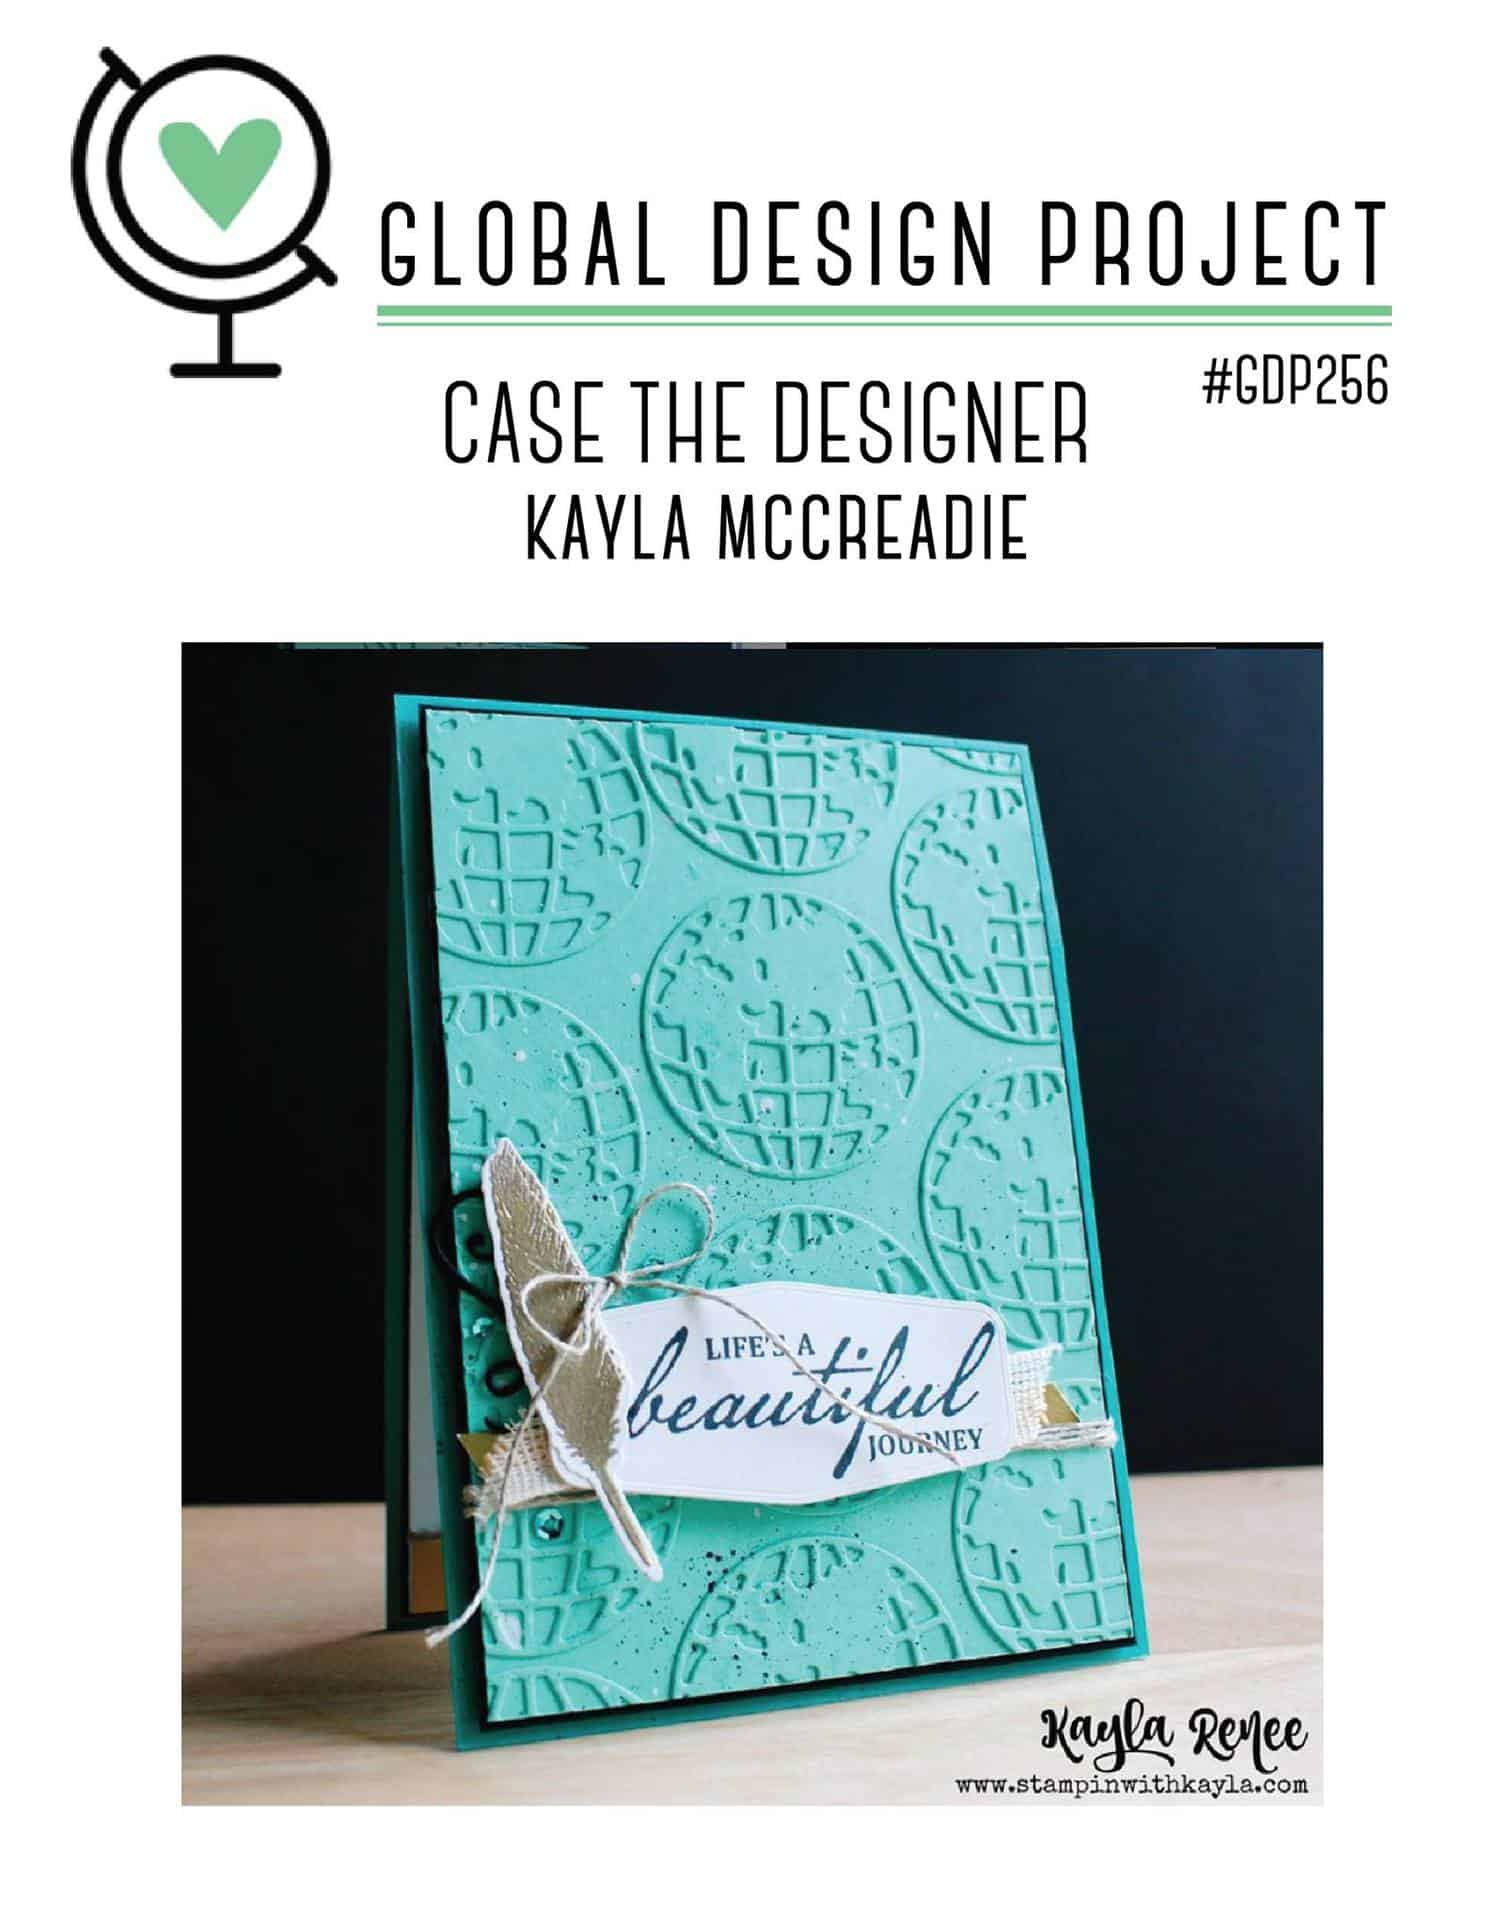 Global Design Project 256